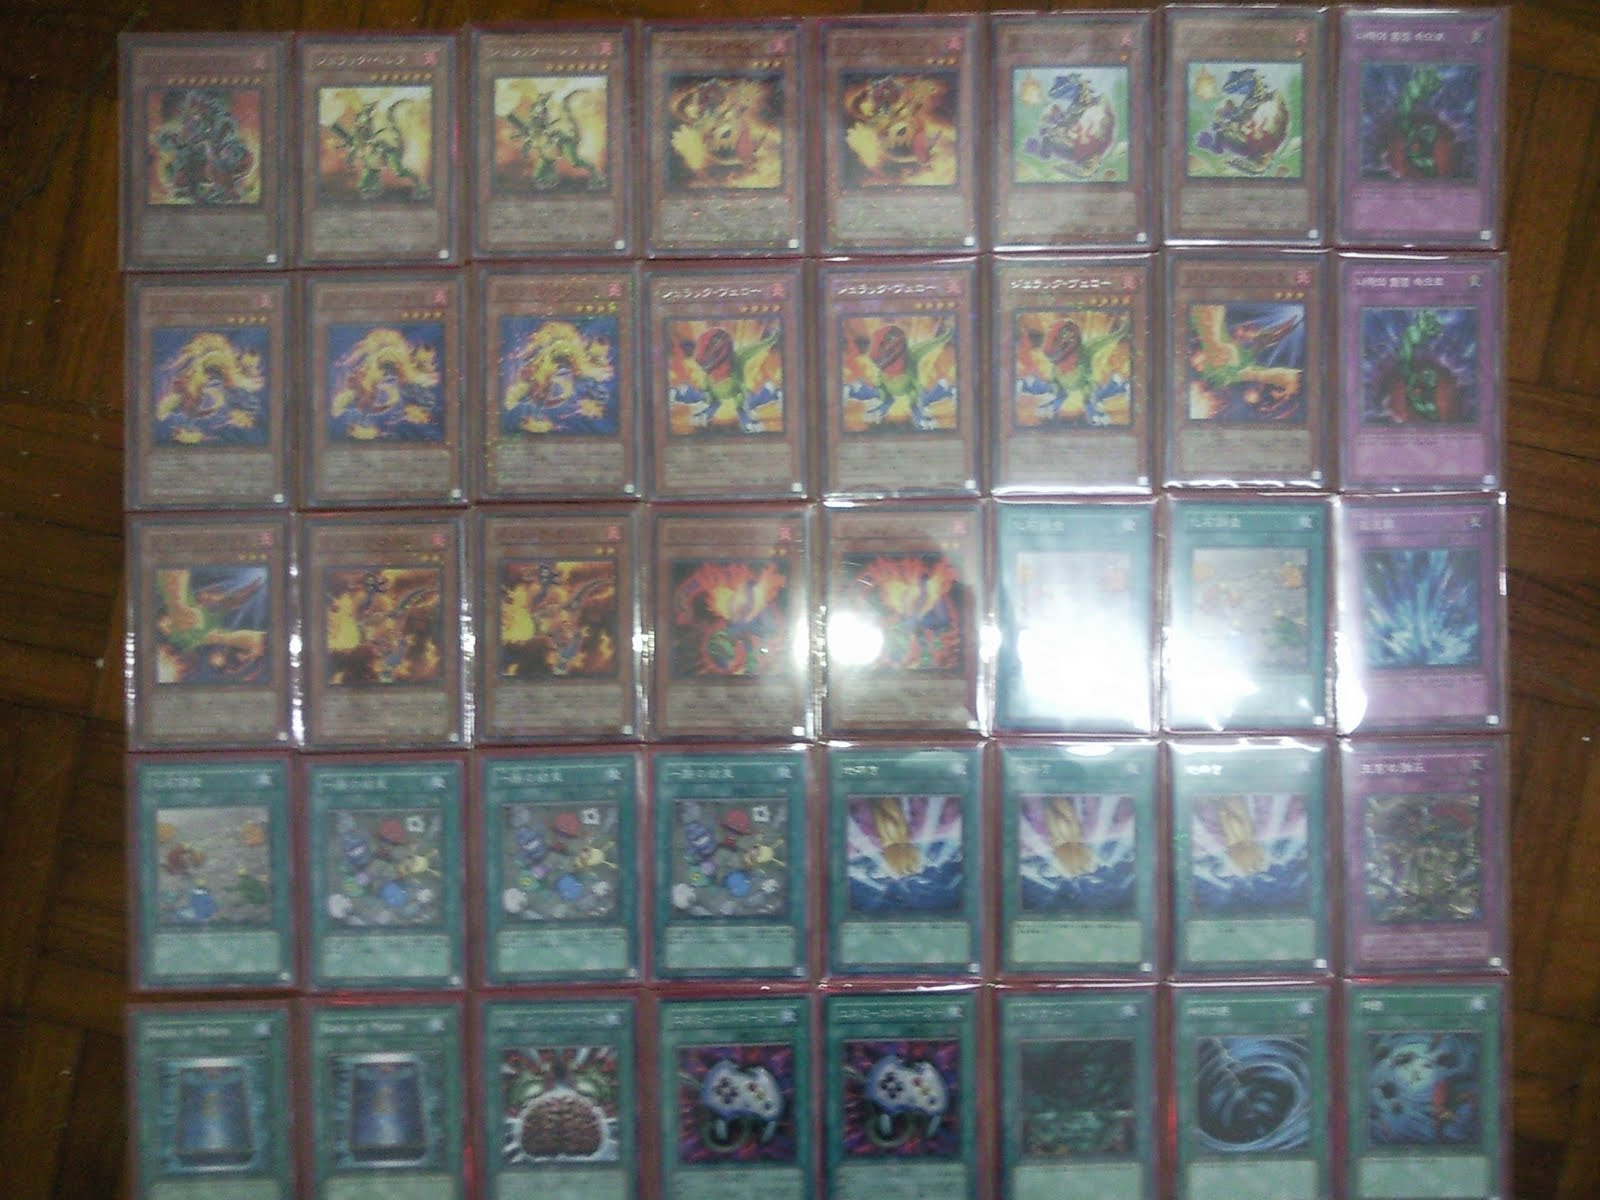 Liings daily dose of life 5110 hi friends and daily readers today i introduce to you a jurrac deck i name this decki royal solid jurracs because it has royal oppressions ccuart Images